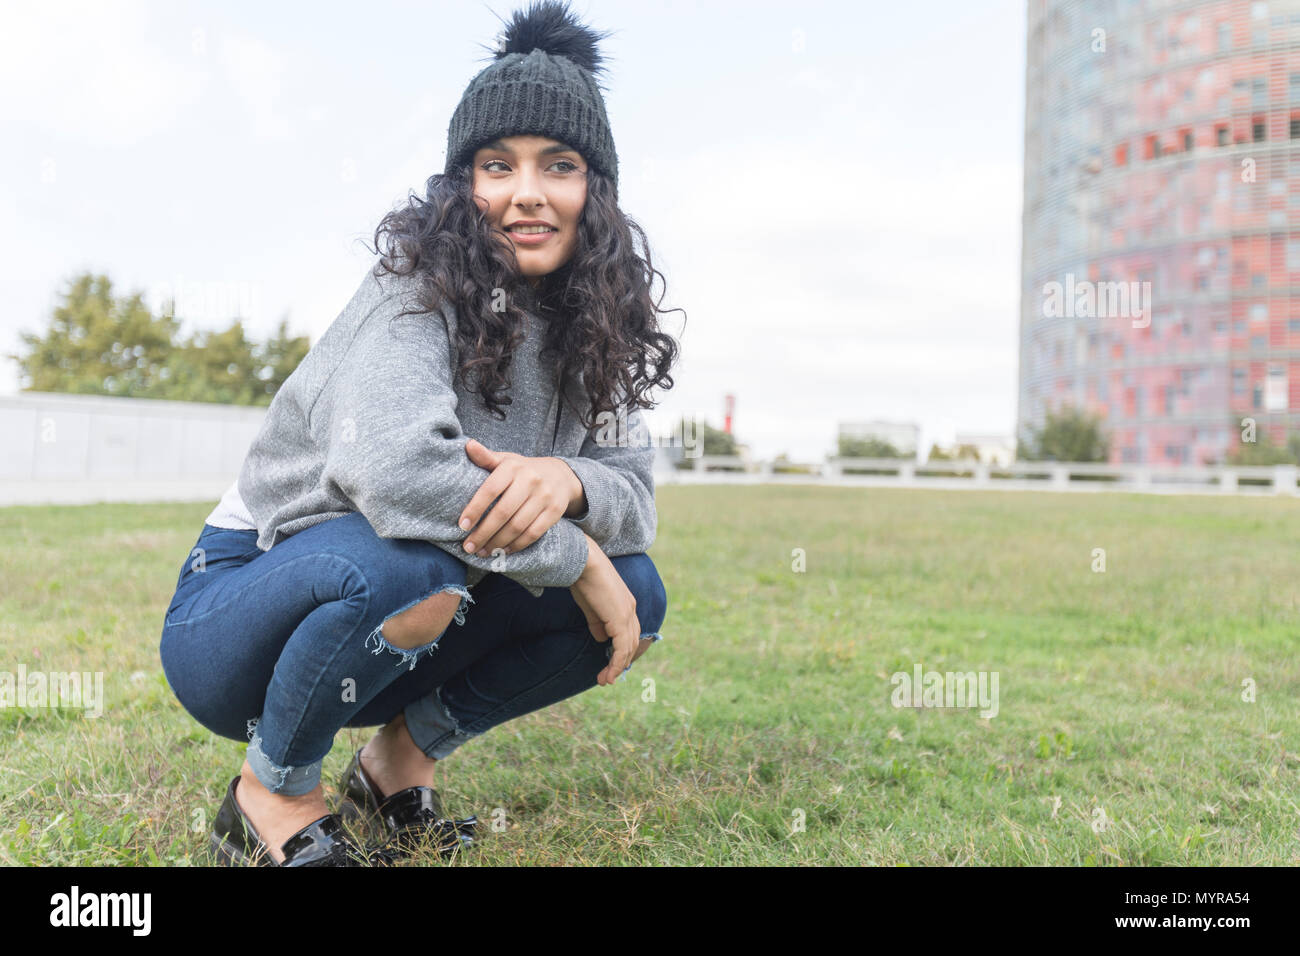 portrait of a woman with wool cap and sweater crouched on a grass garden - Stock Image